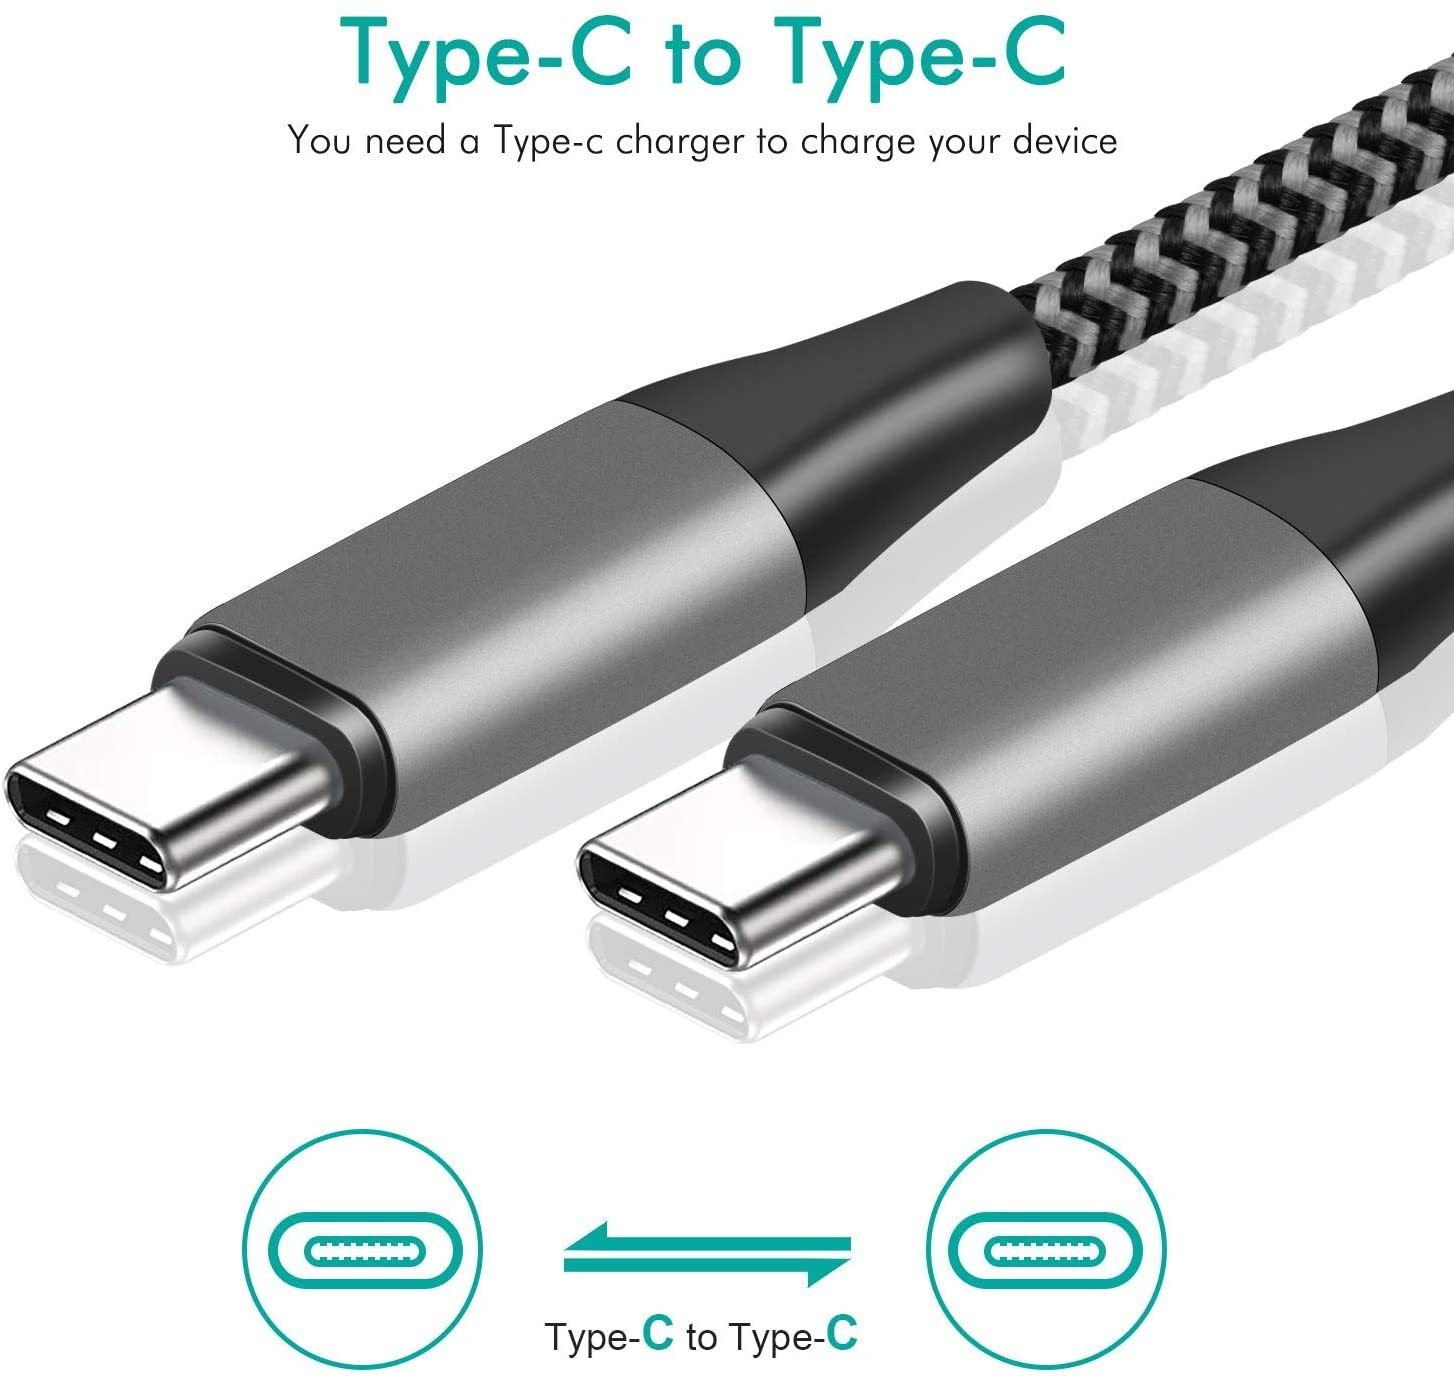 USB C TO USB C Cable USB PD 60W For Samsung S 20 10 Note10 Note9 For Fast Charging USBC Cable for Macbook Air HUAWEI P20 P30 Pro